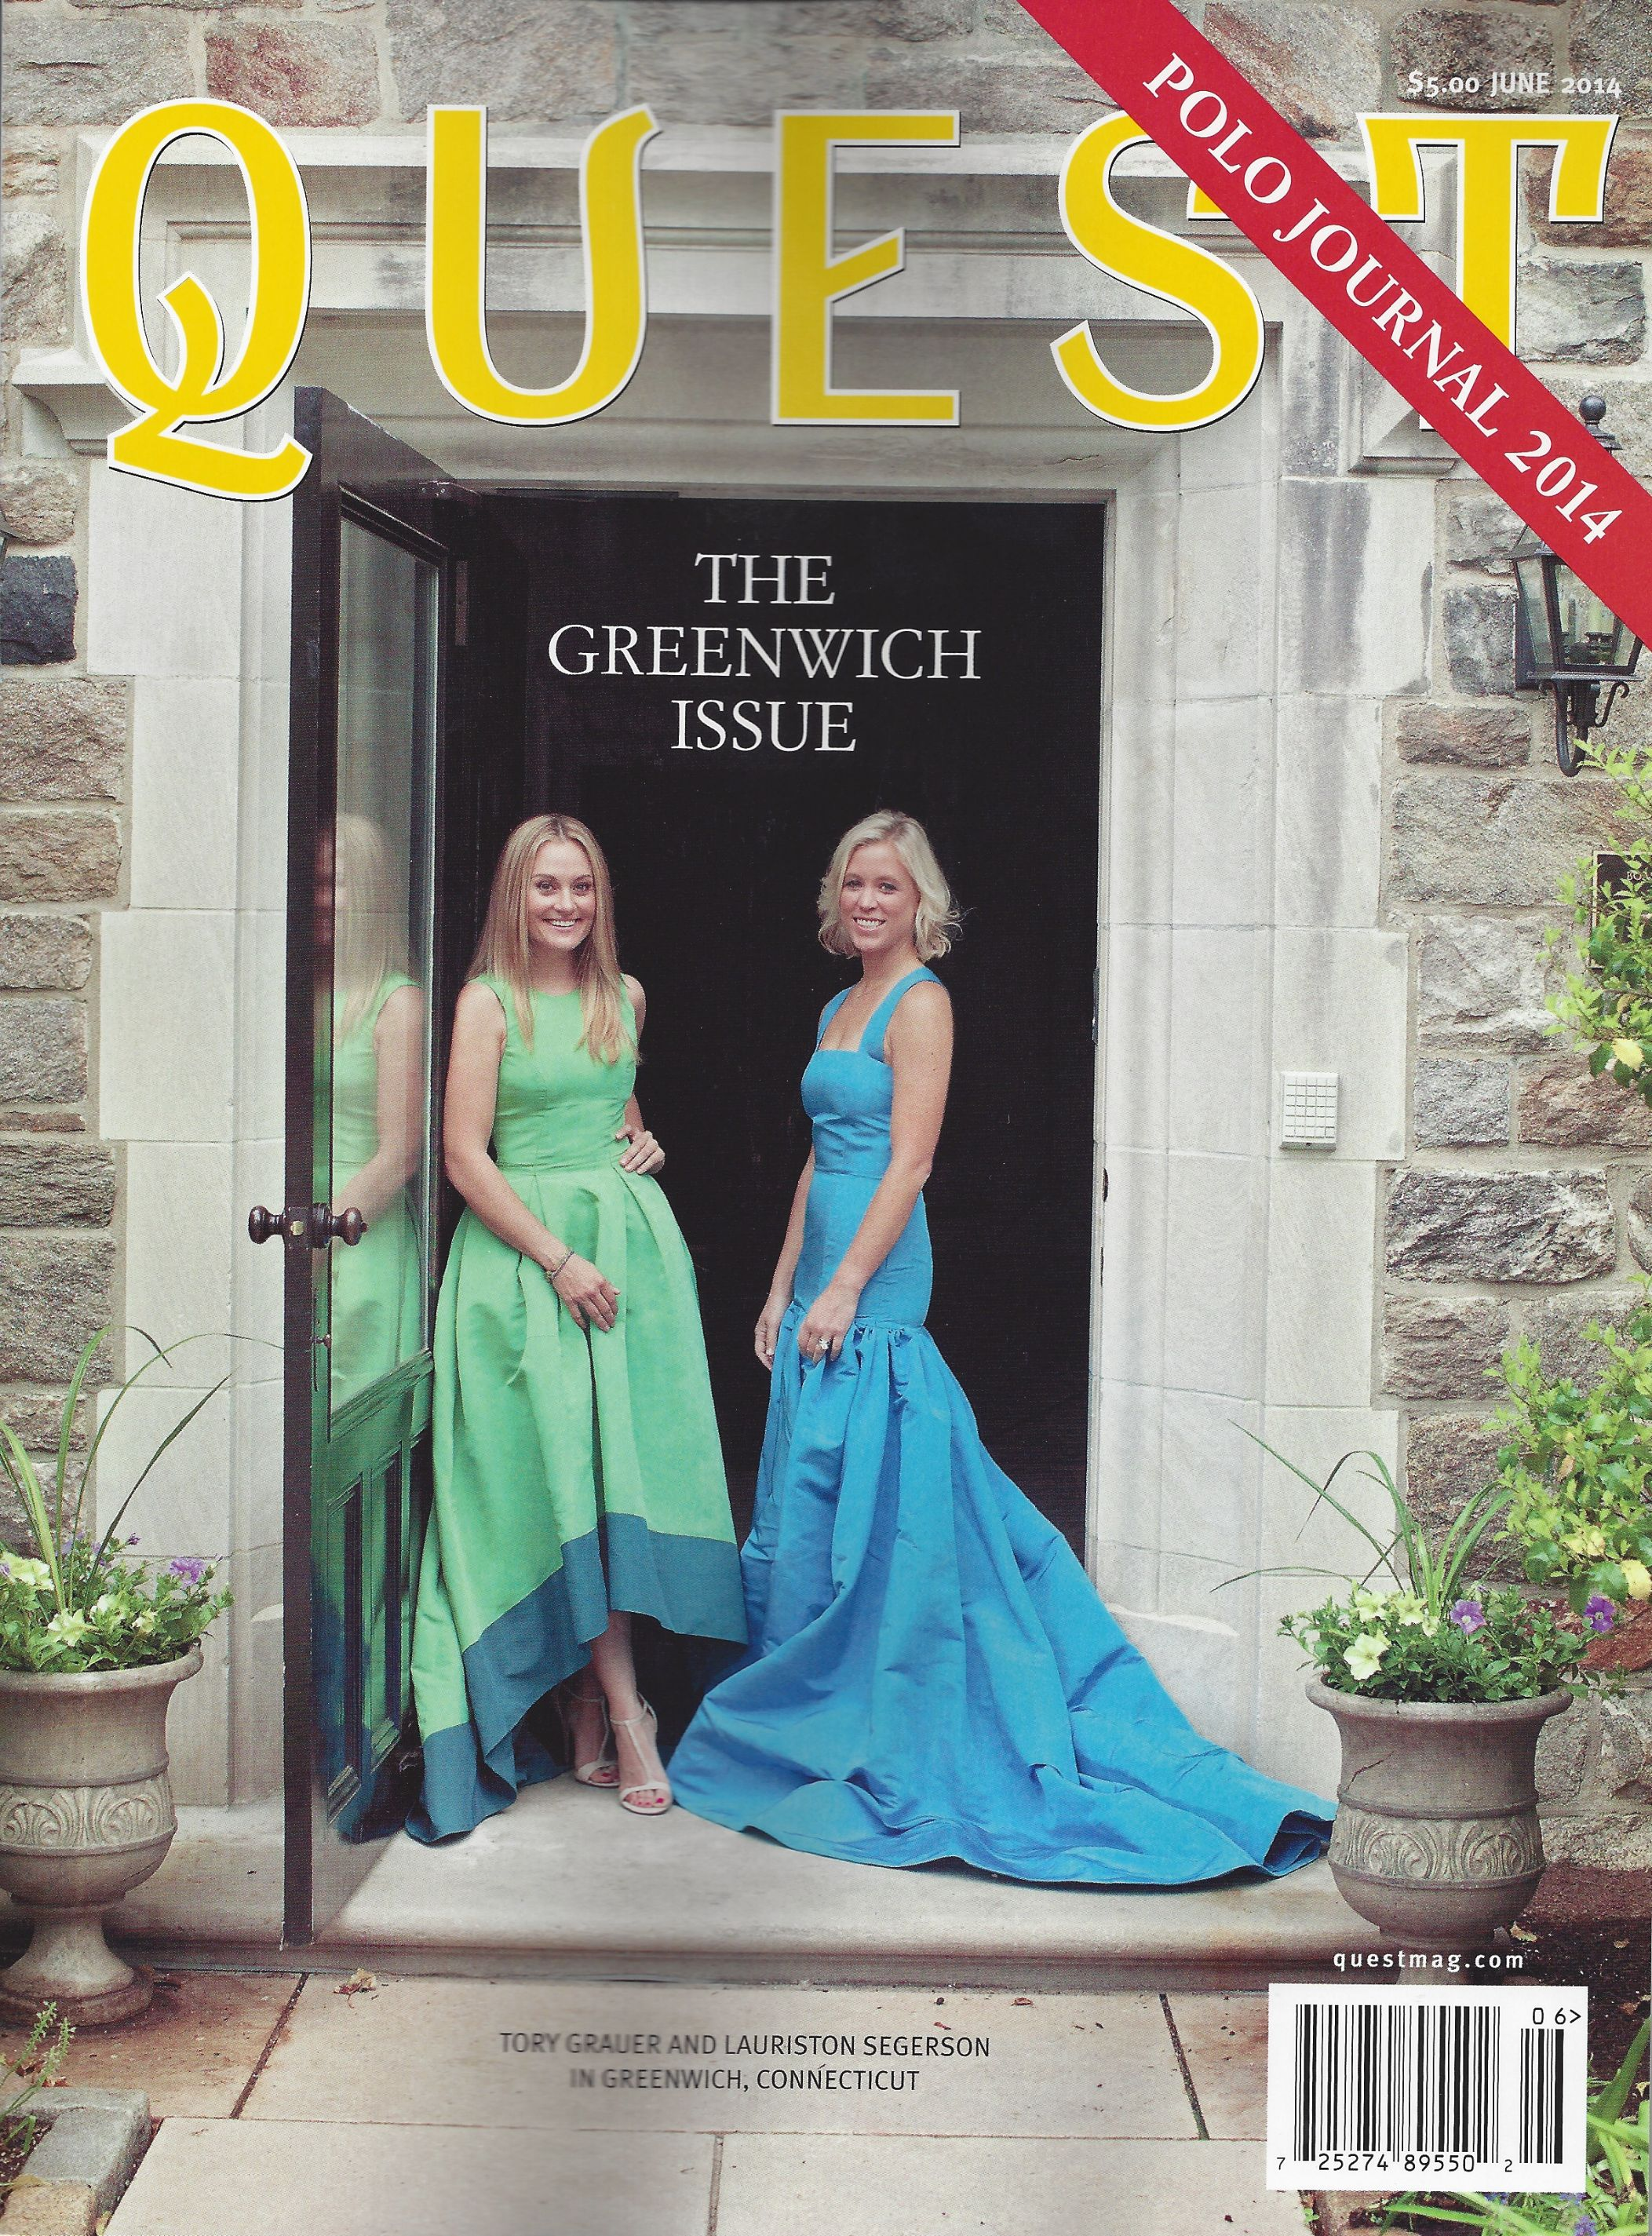 Quest - The Greenwich Issue